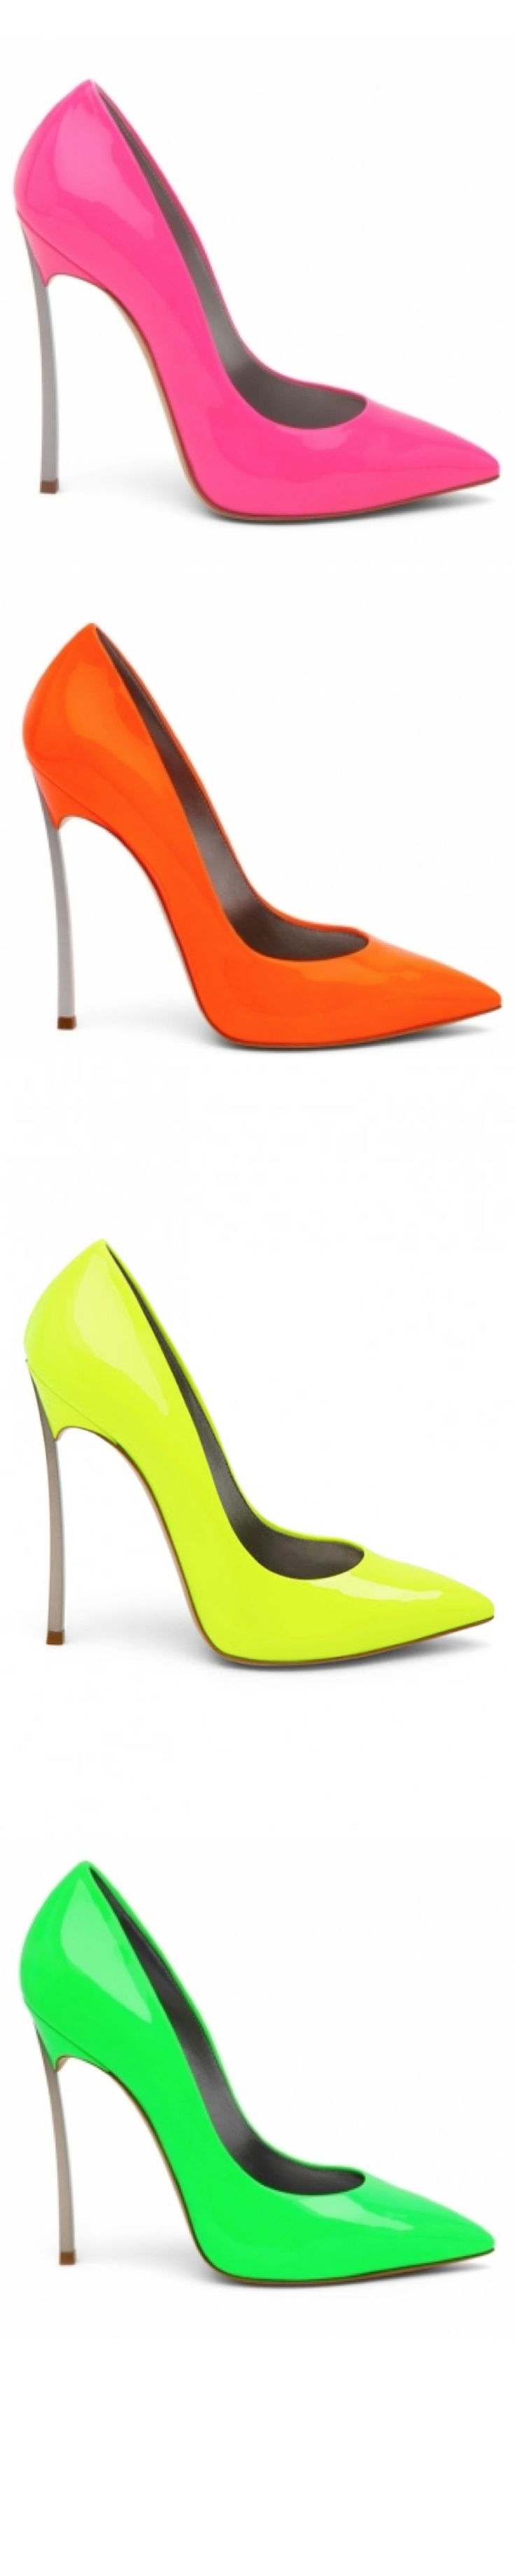 Ok im sorry but what is up with these heels? These look super weird and uncomfortable ! Why would anybody wear them?